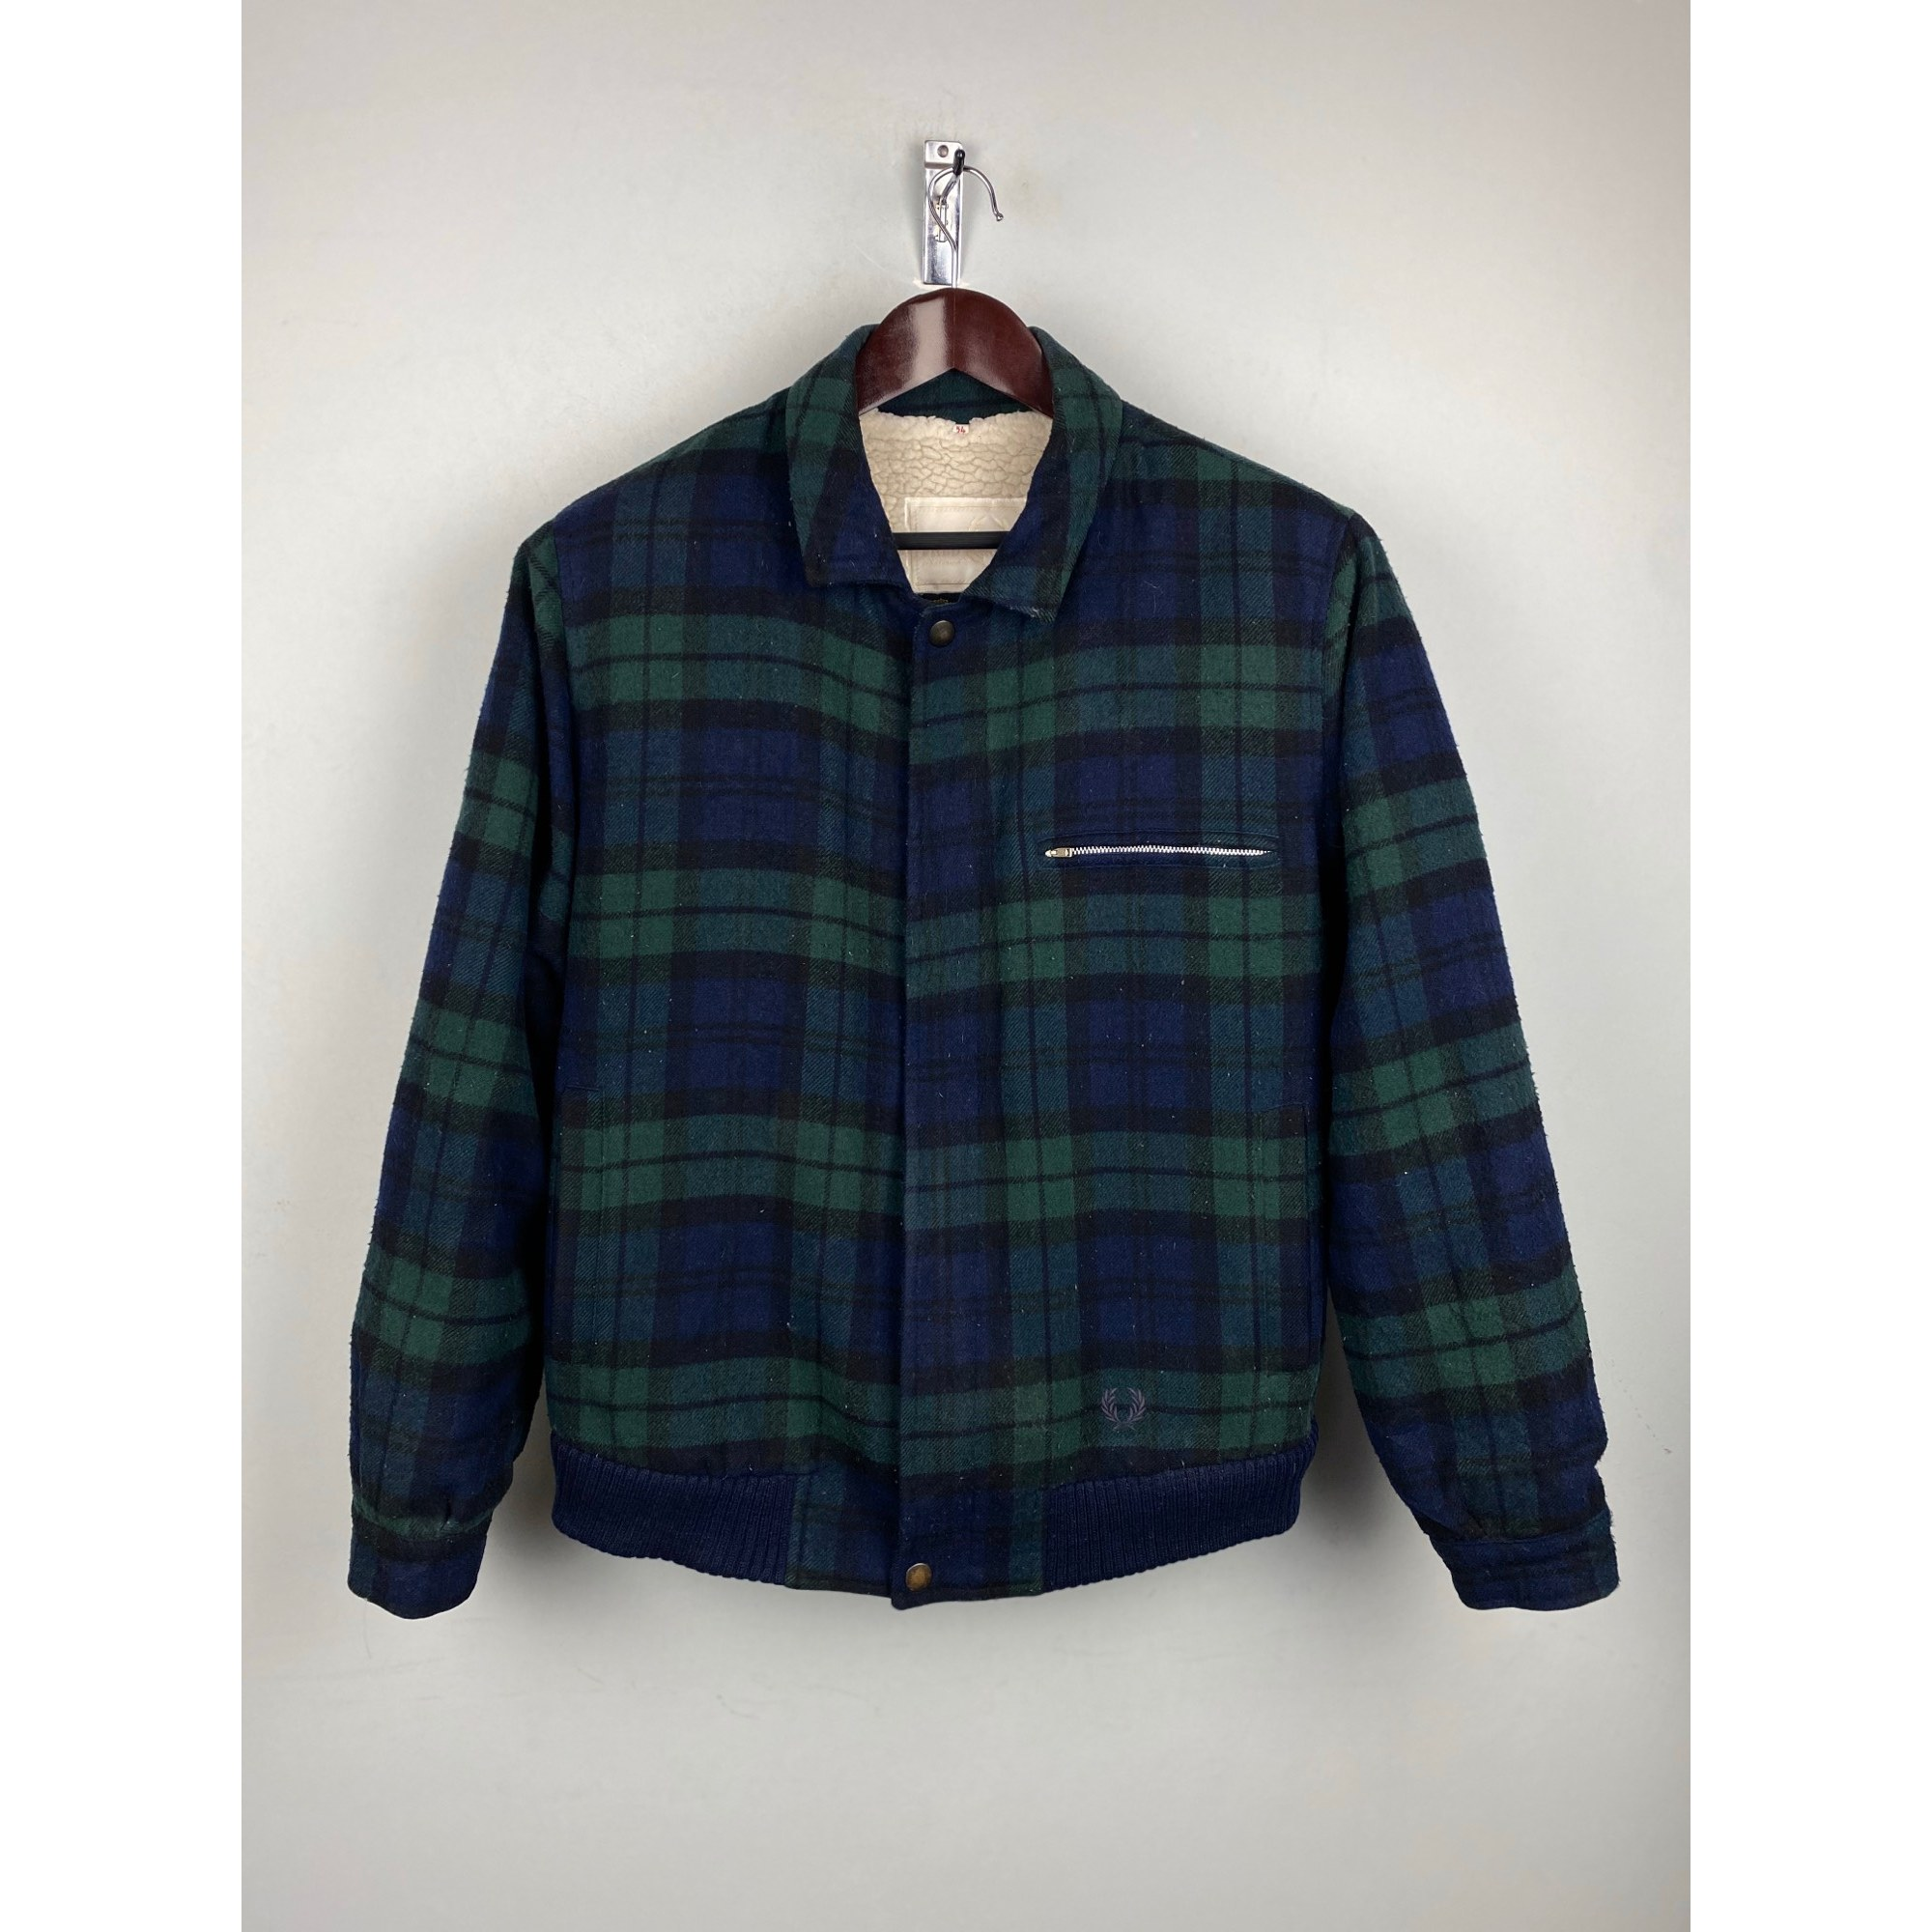 Zipped Jacket FRED PERRY Multicolor